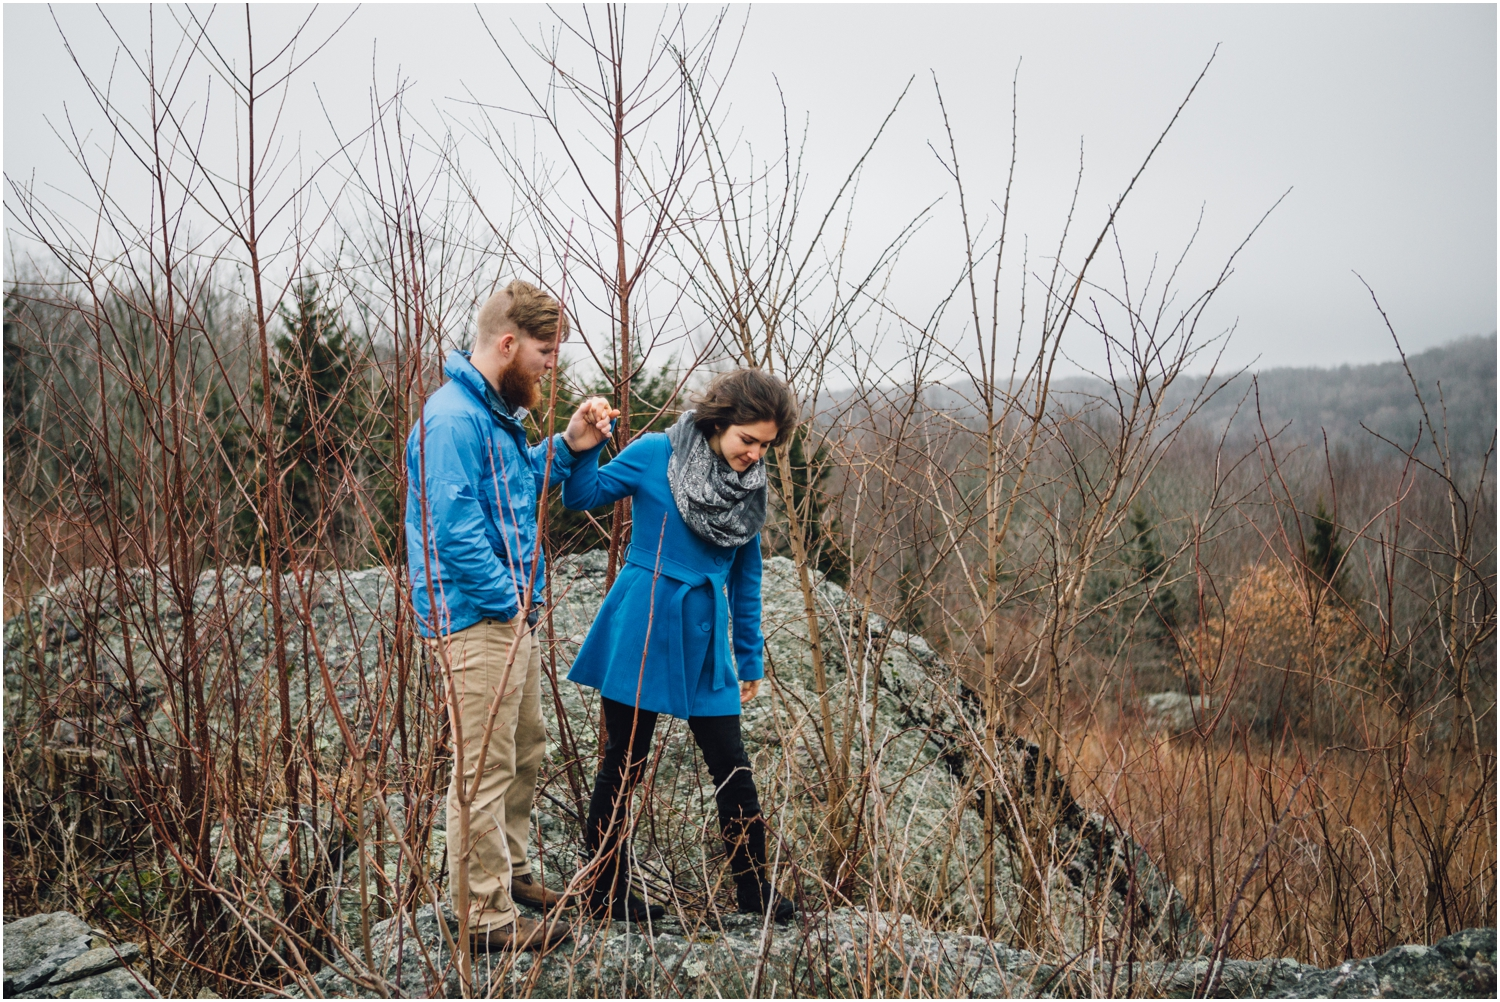 katy-sergent-photography-grayson-highlands-engagement-session-mouth-of-wilson-virginia-damascus-appalachian-trail-tennessee-wedding-elopement_0019.jpg